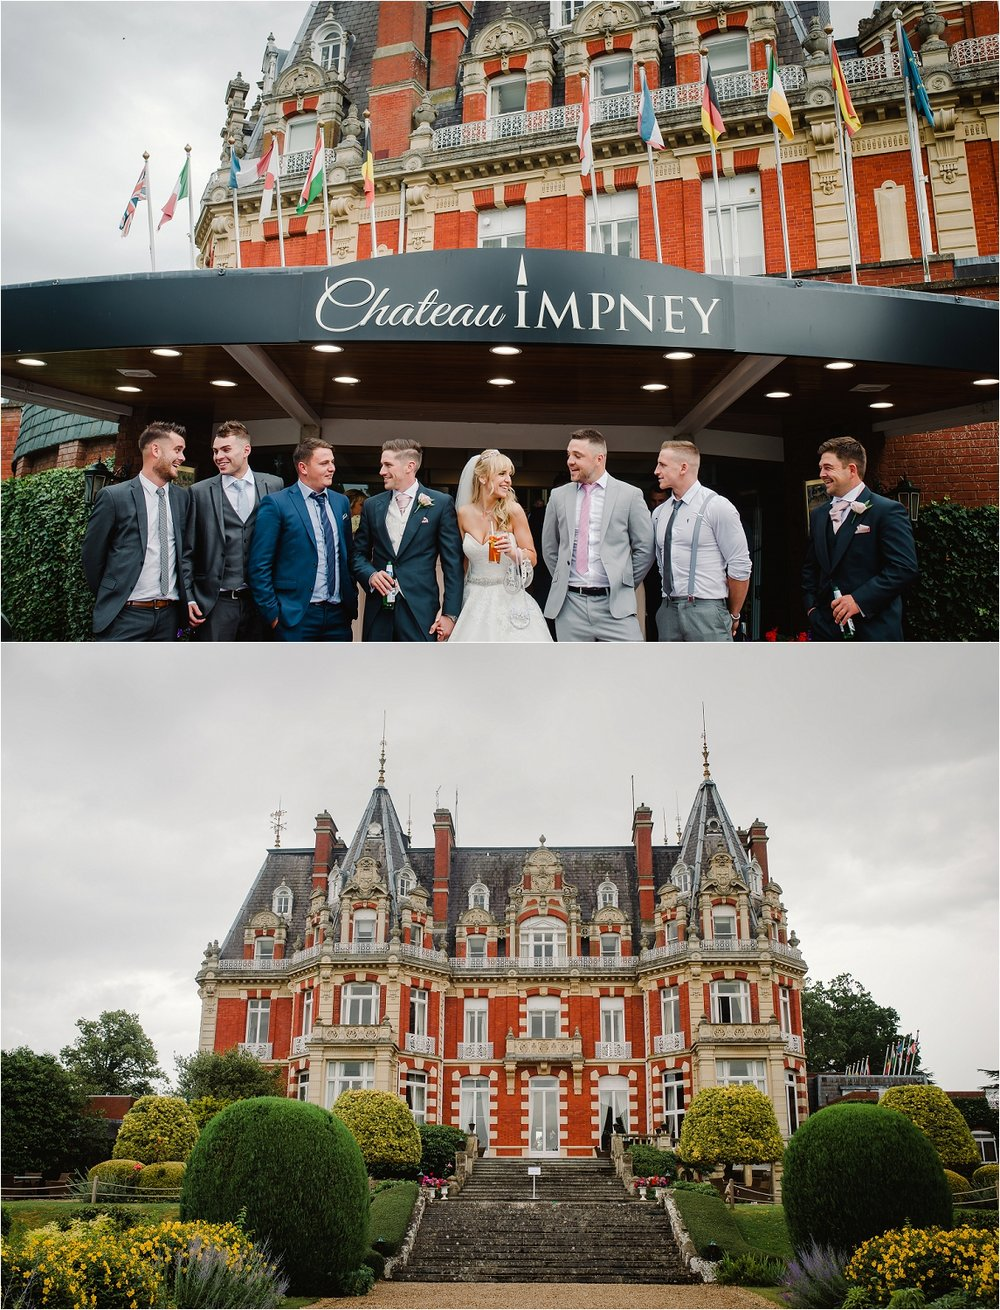 chateau_impney_wedding_ally_heidi_0061.jpg